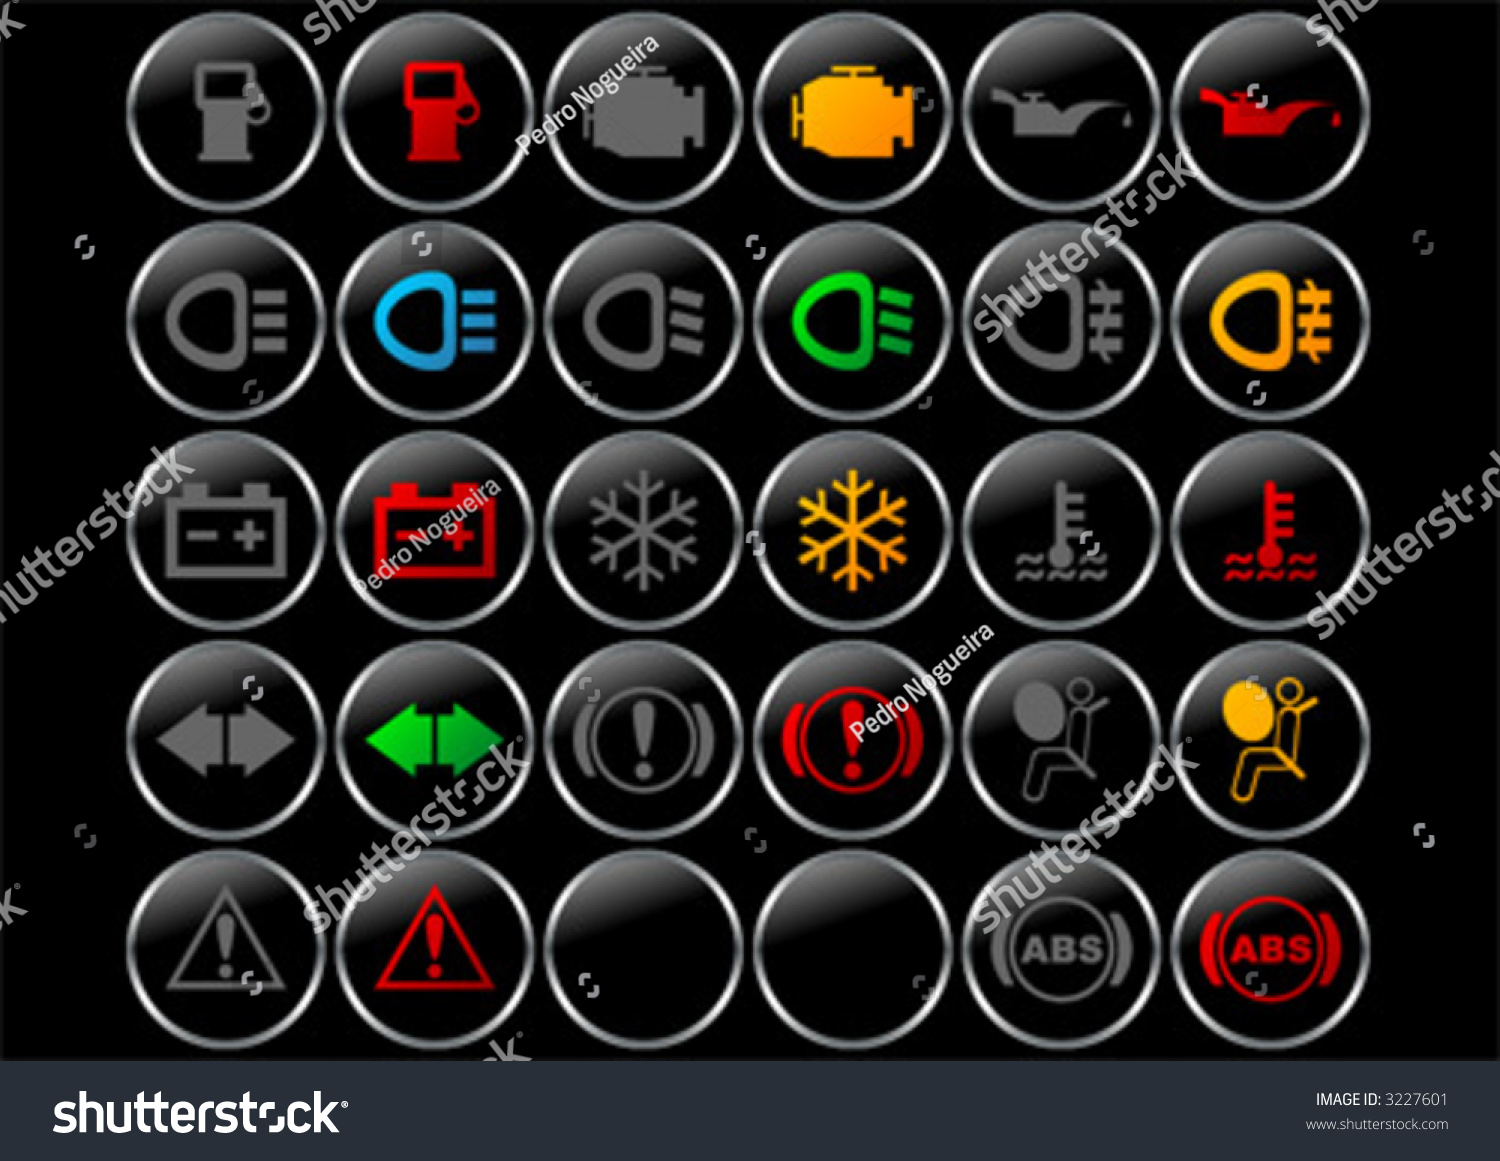 Royalty-free Different car dashboard symbols with… #3227601 Stock ...